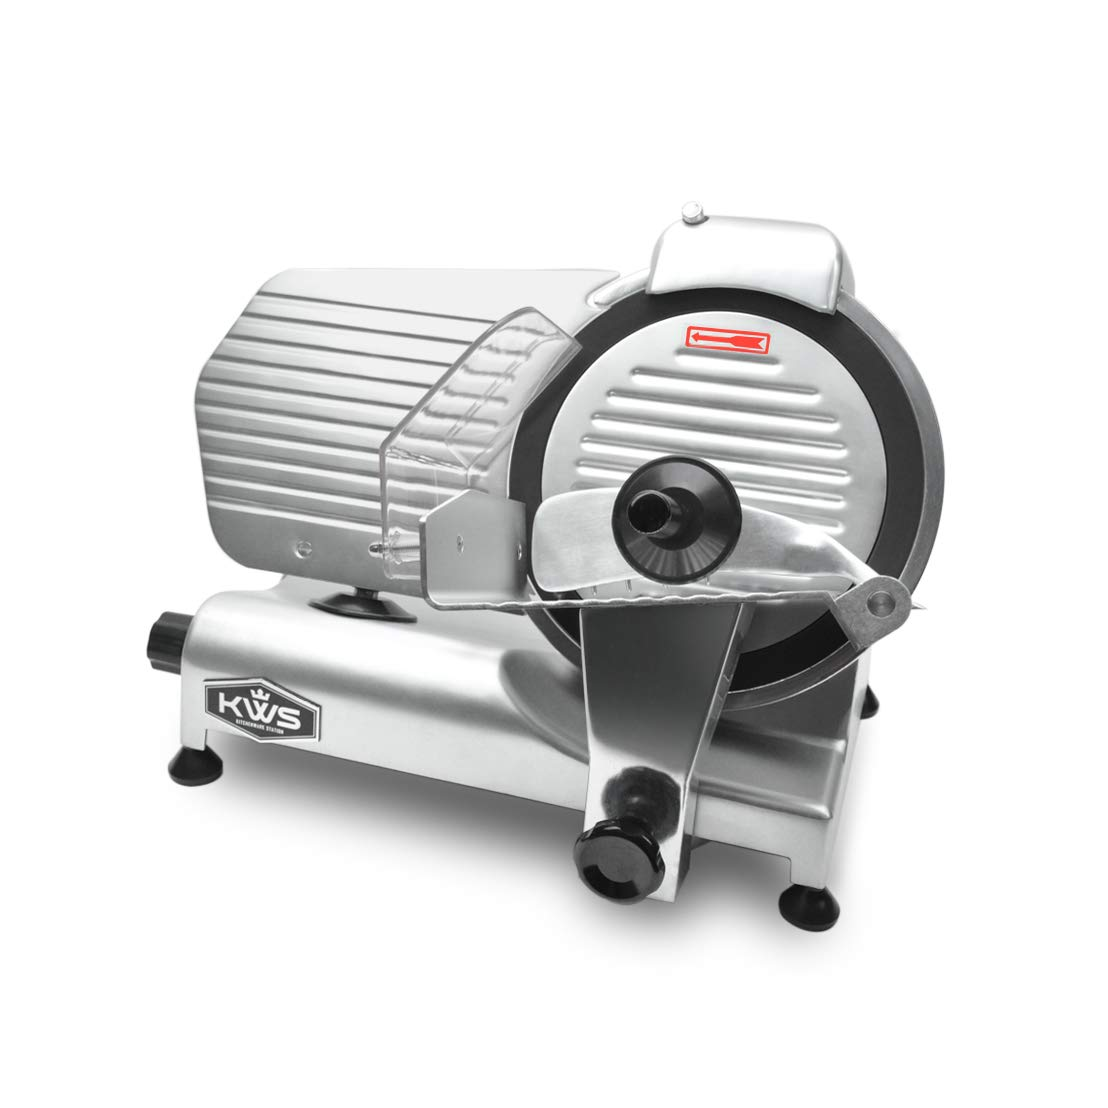 KWS MS-10NT Premium Commercial 320W Electric Meat Slicer 10-Inch with Non-sticky Teflon Blade, Frozen Meat/Deli Meat/Cheese/Food Slicer Low Noises Commercial and Home Use by KitchenWare Station